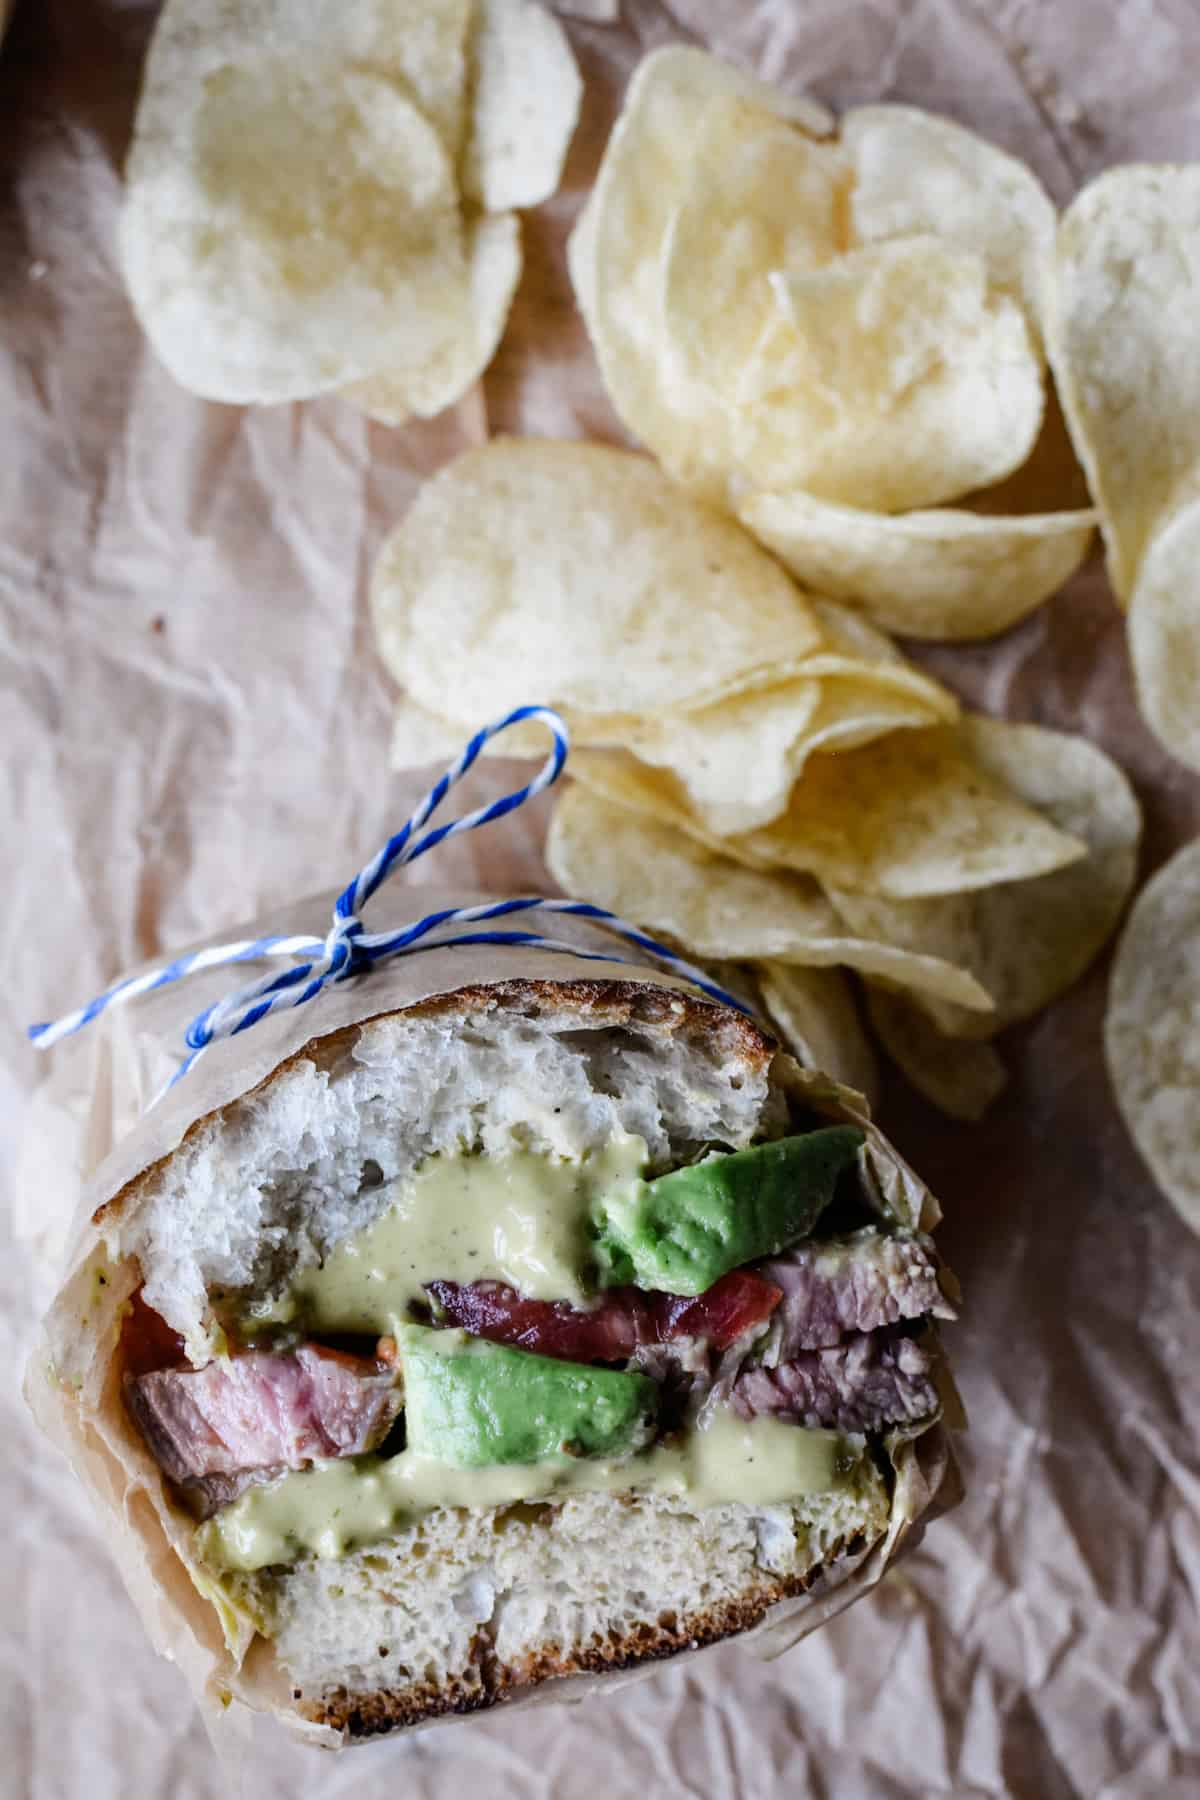 Half of a Carne Asada Torta sitting on a piece of brown parchment paper with potato chips on the side. The sandwich is wrapped in paper with a blue and white string around it.